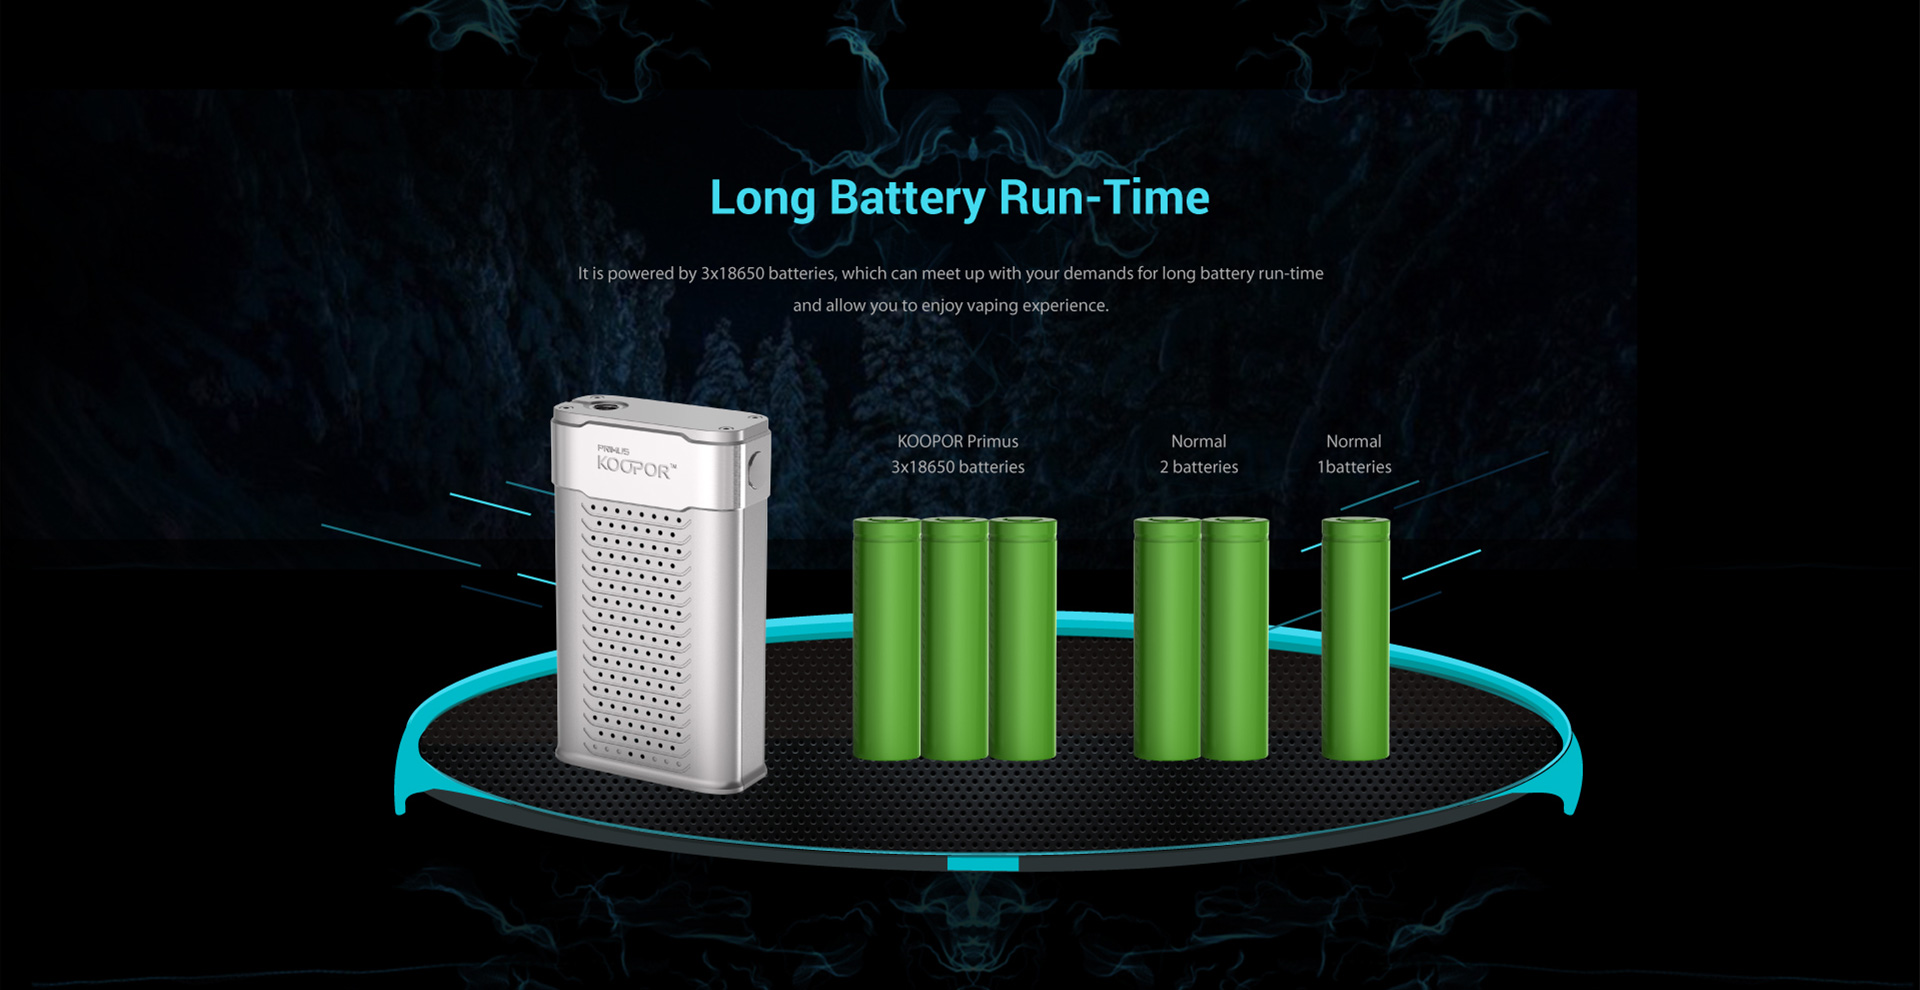 koopor 300w long battery run-time